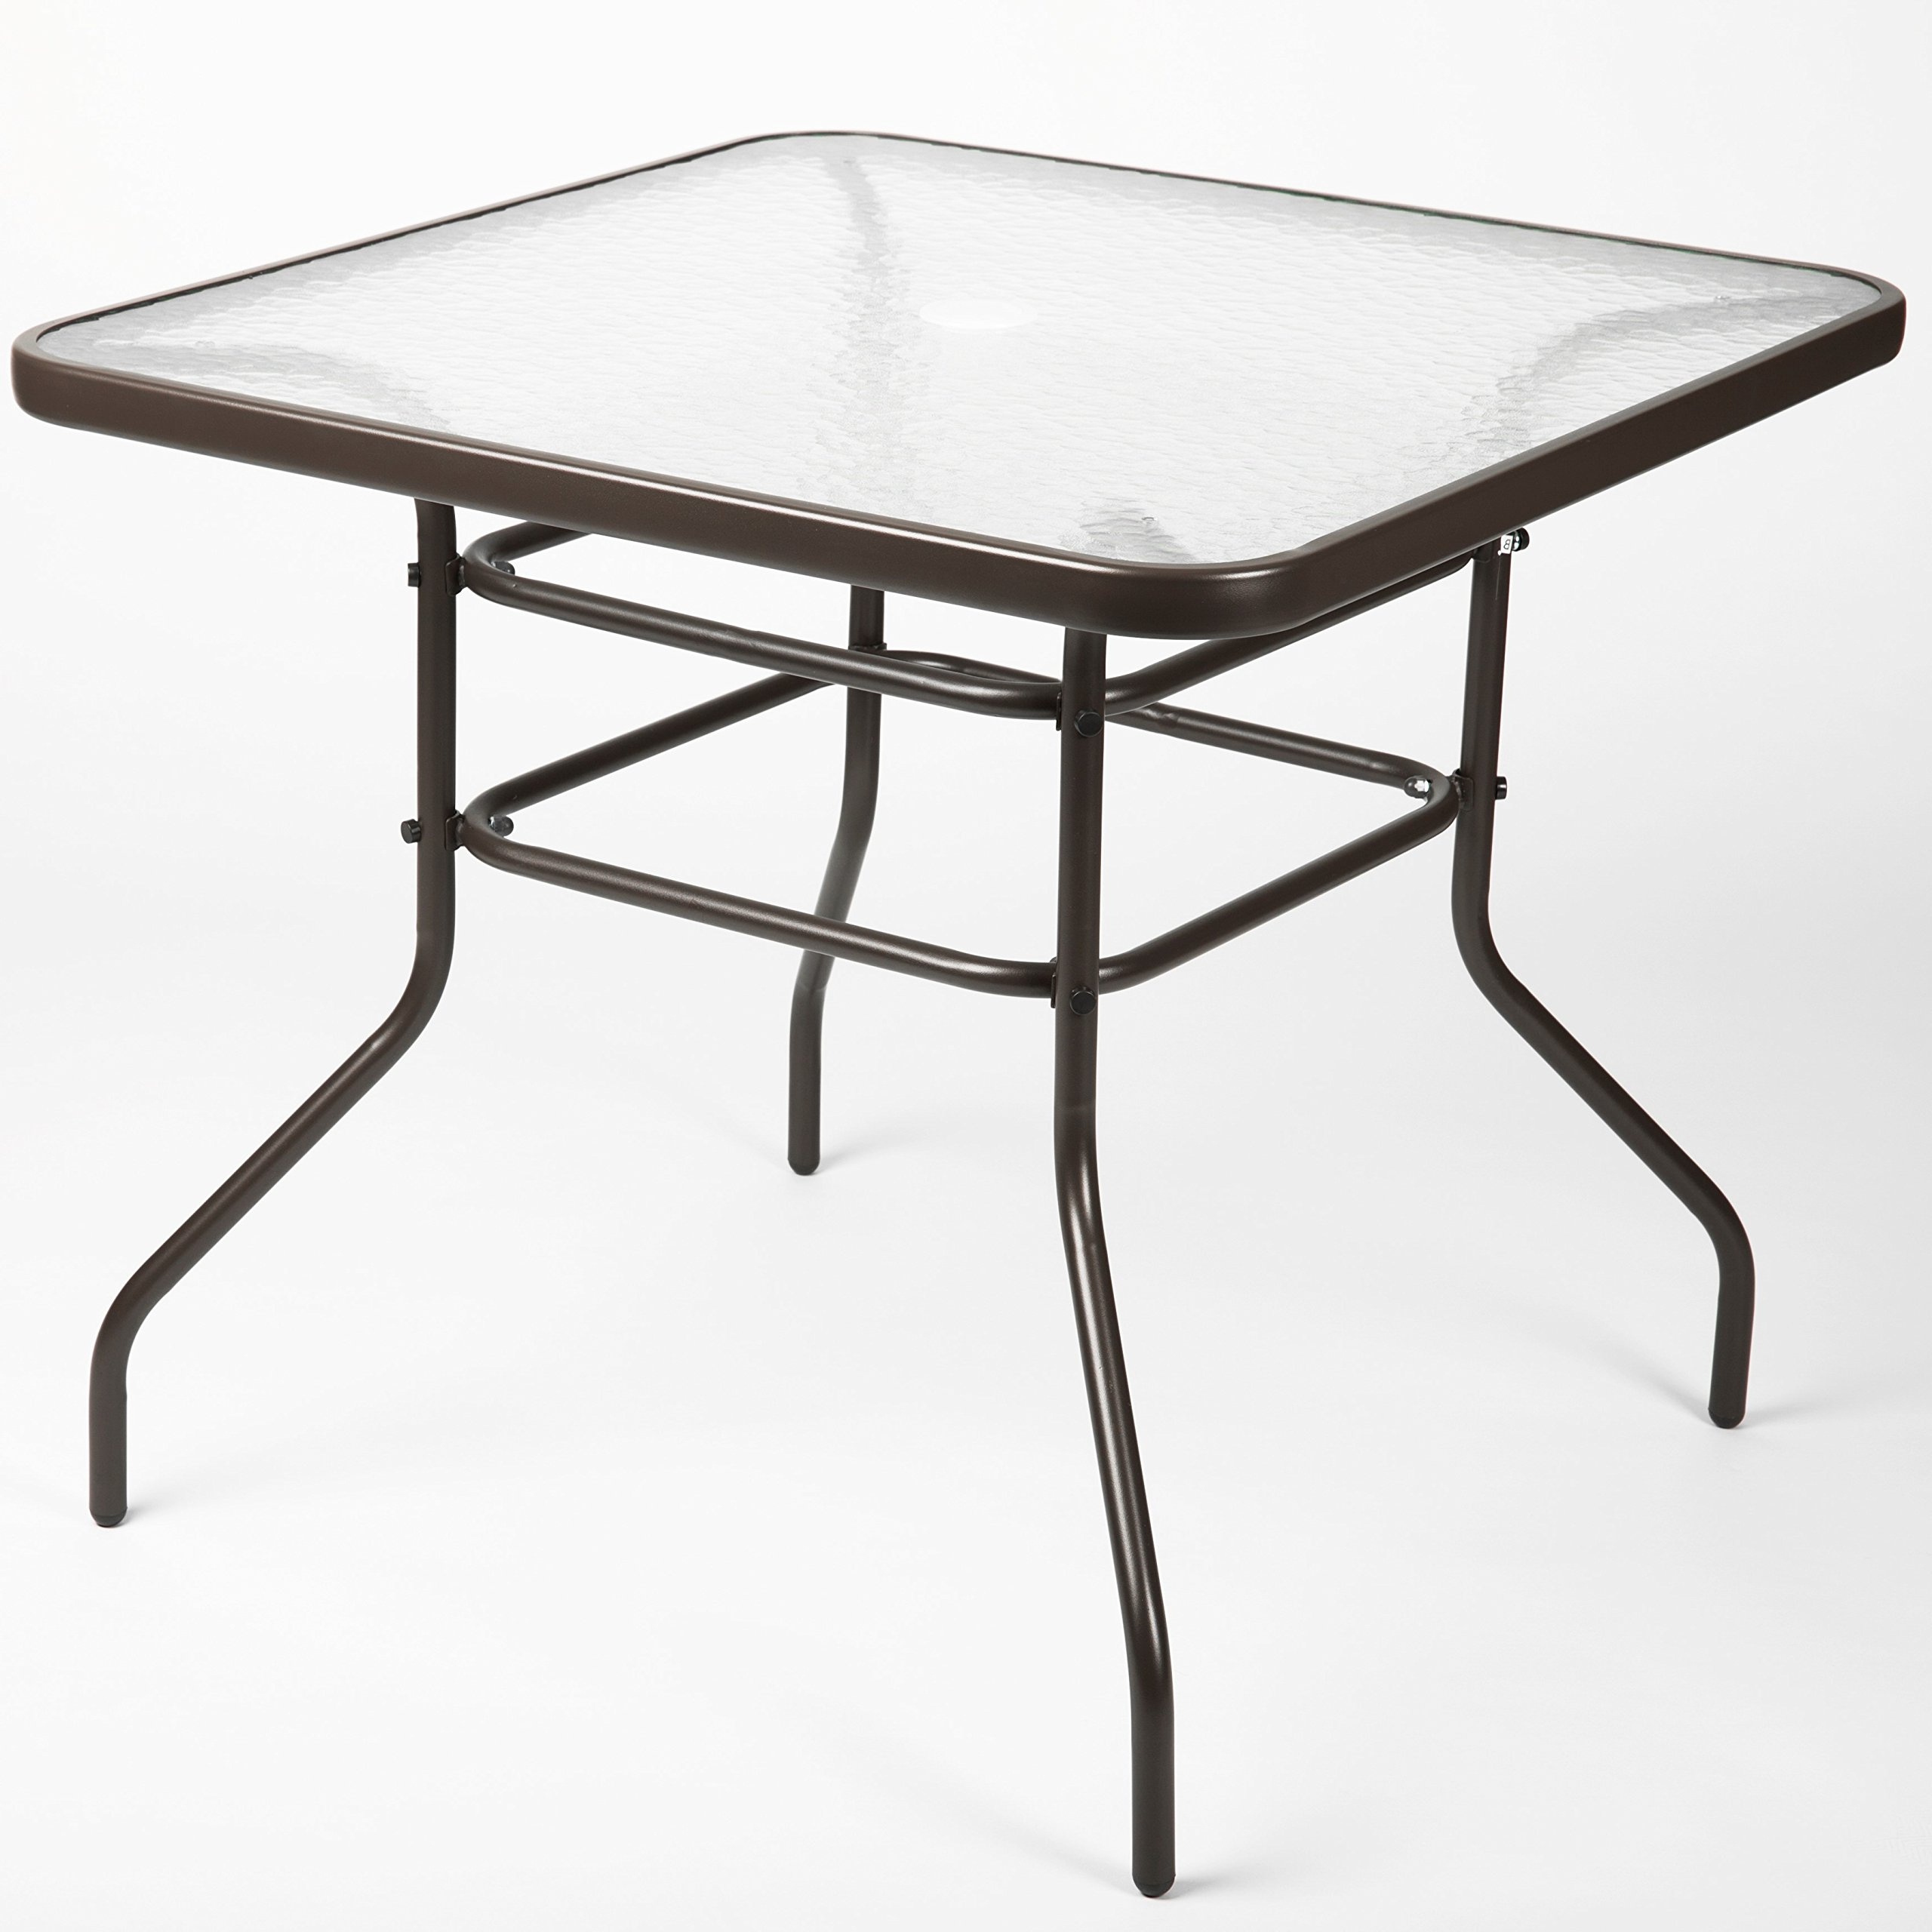 Widely Used Cheap Glass Top For Patio Table, Find Glass Top For Patio Table Within Bradford Patiosquare Market Umbrellas (View 16 of 20)